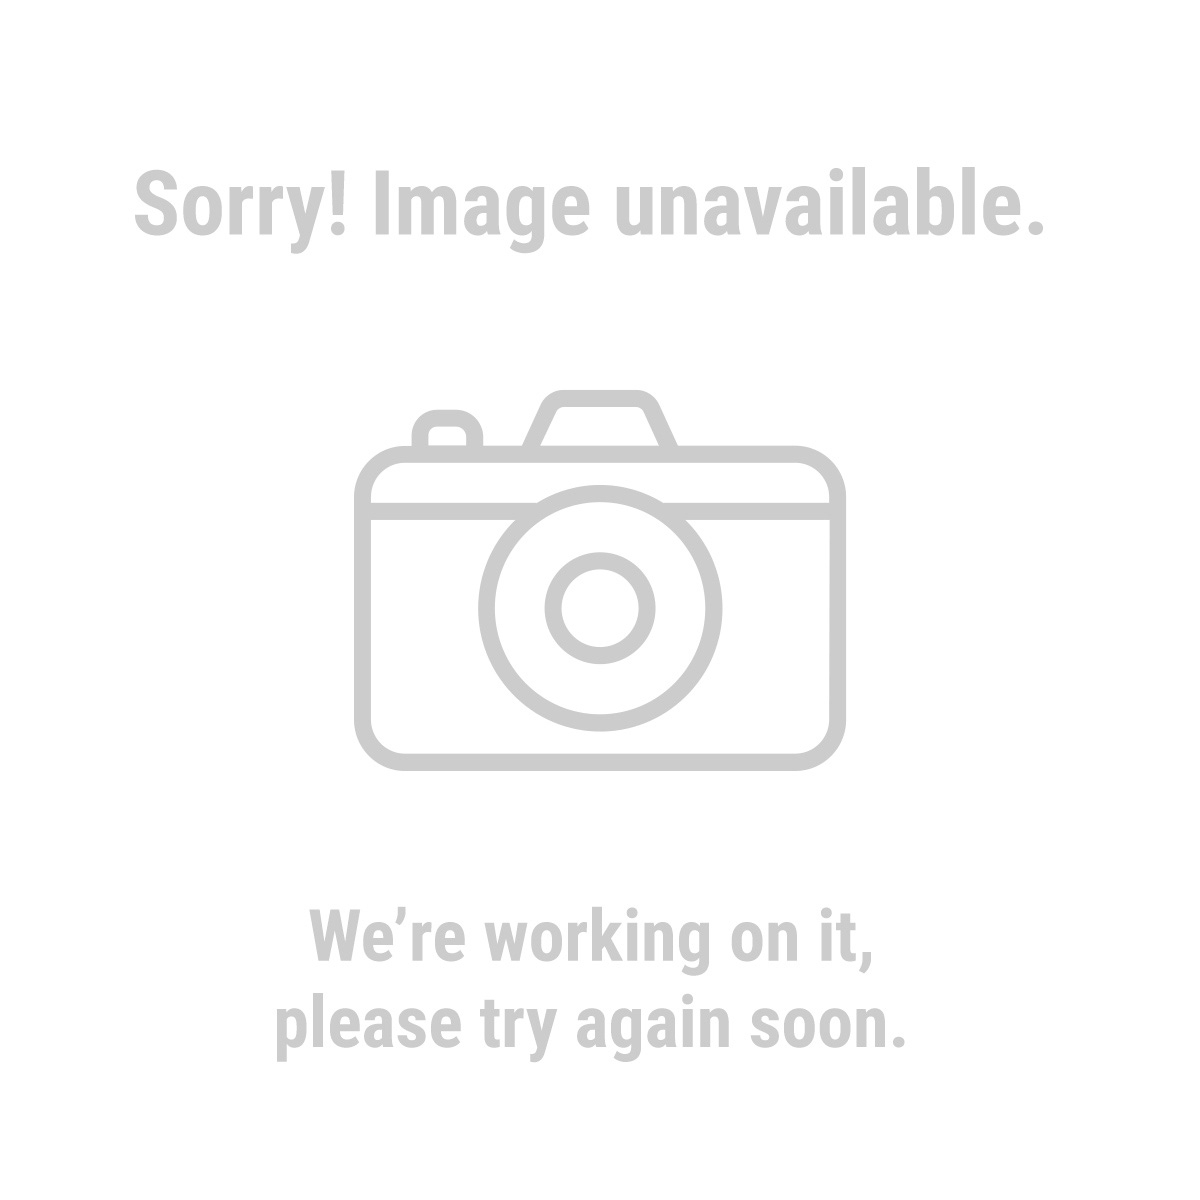 Warrior® 60837 4 in. 40 Grit Masonry Cut-Off Wheel 10 Pc